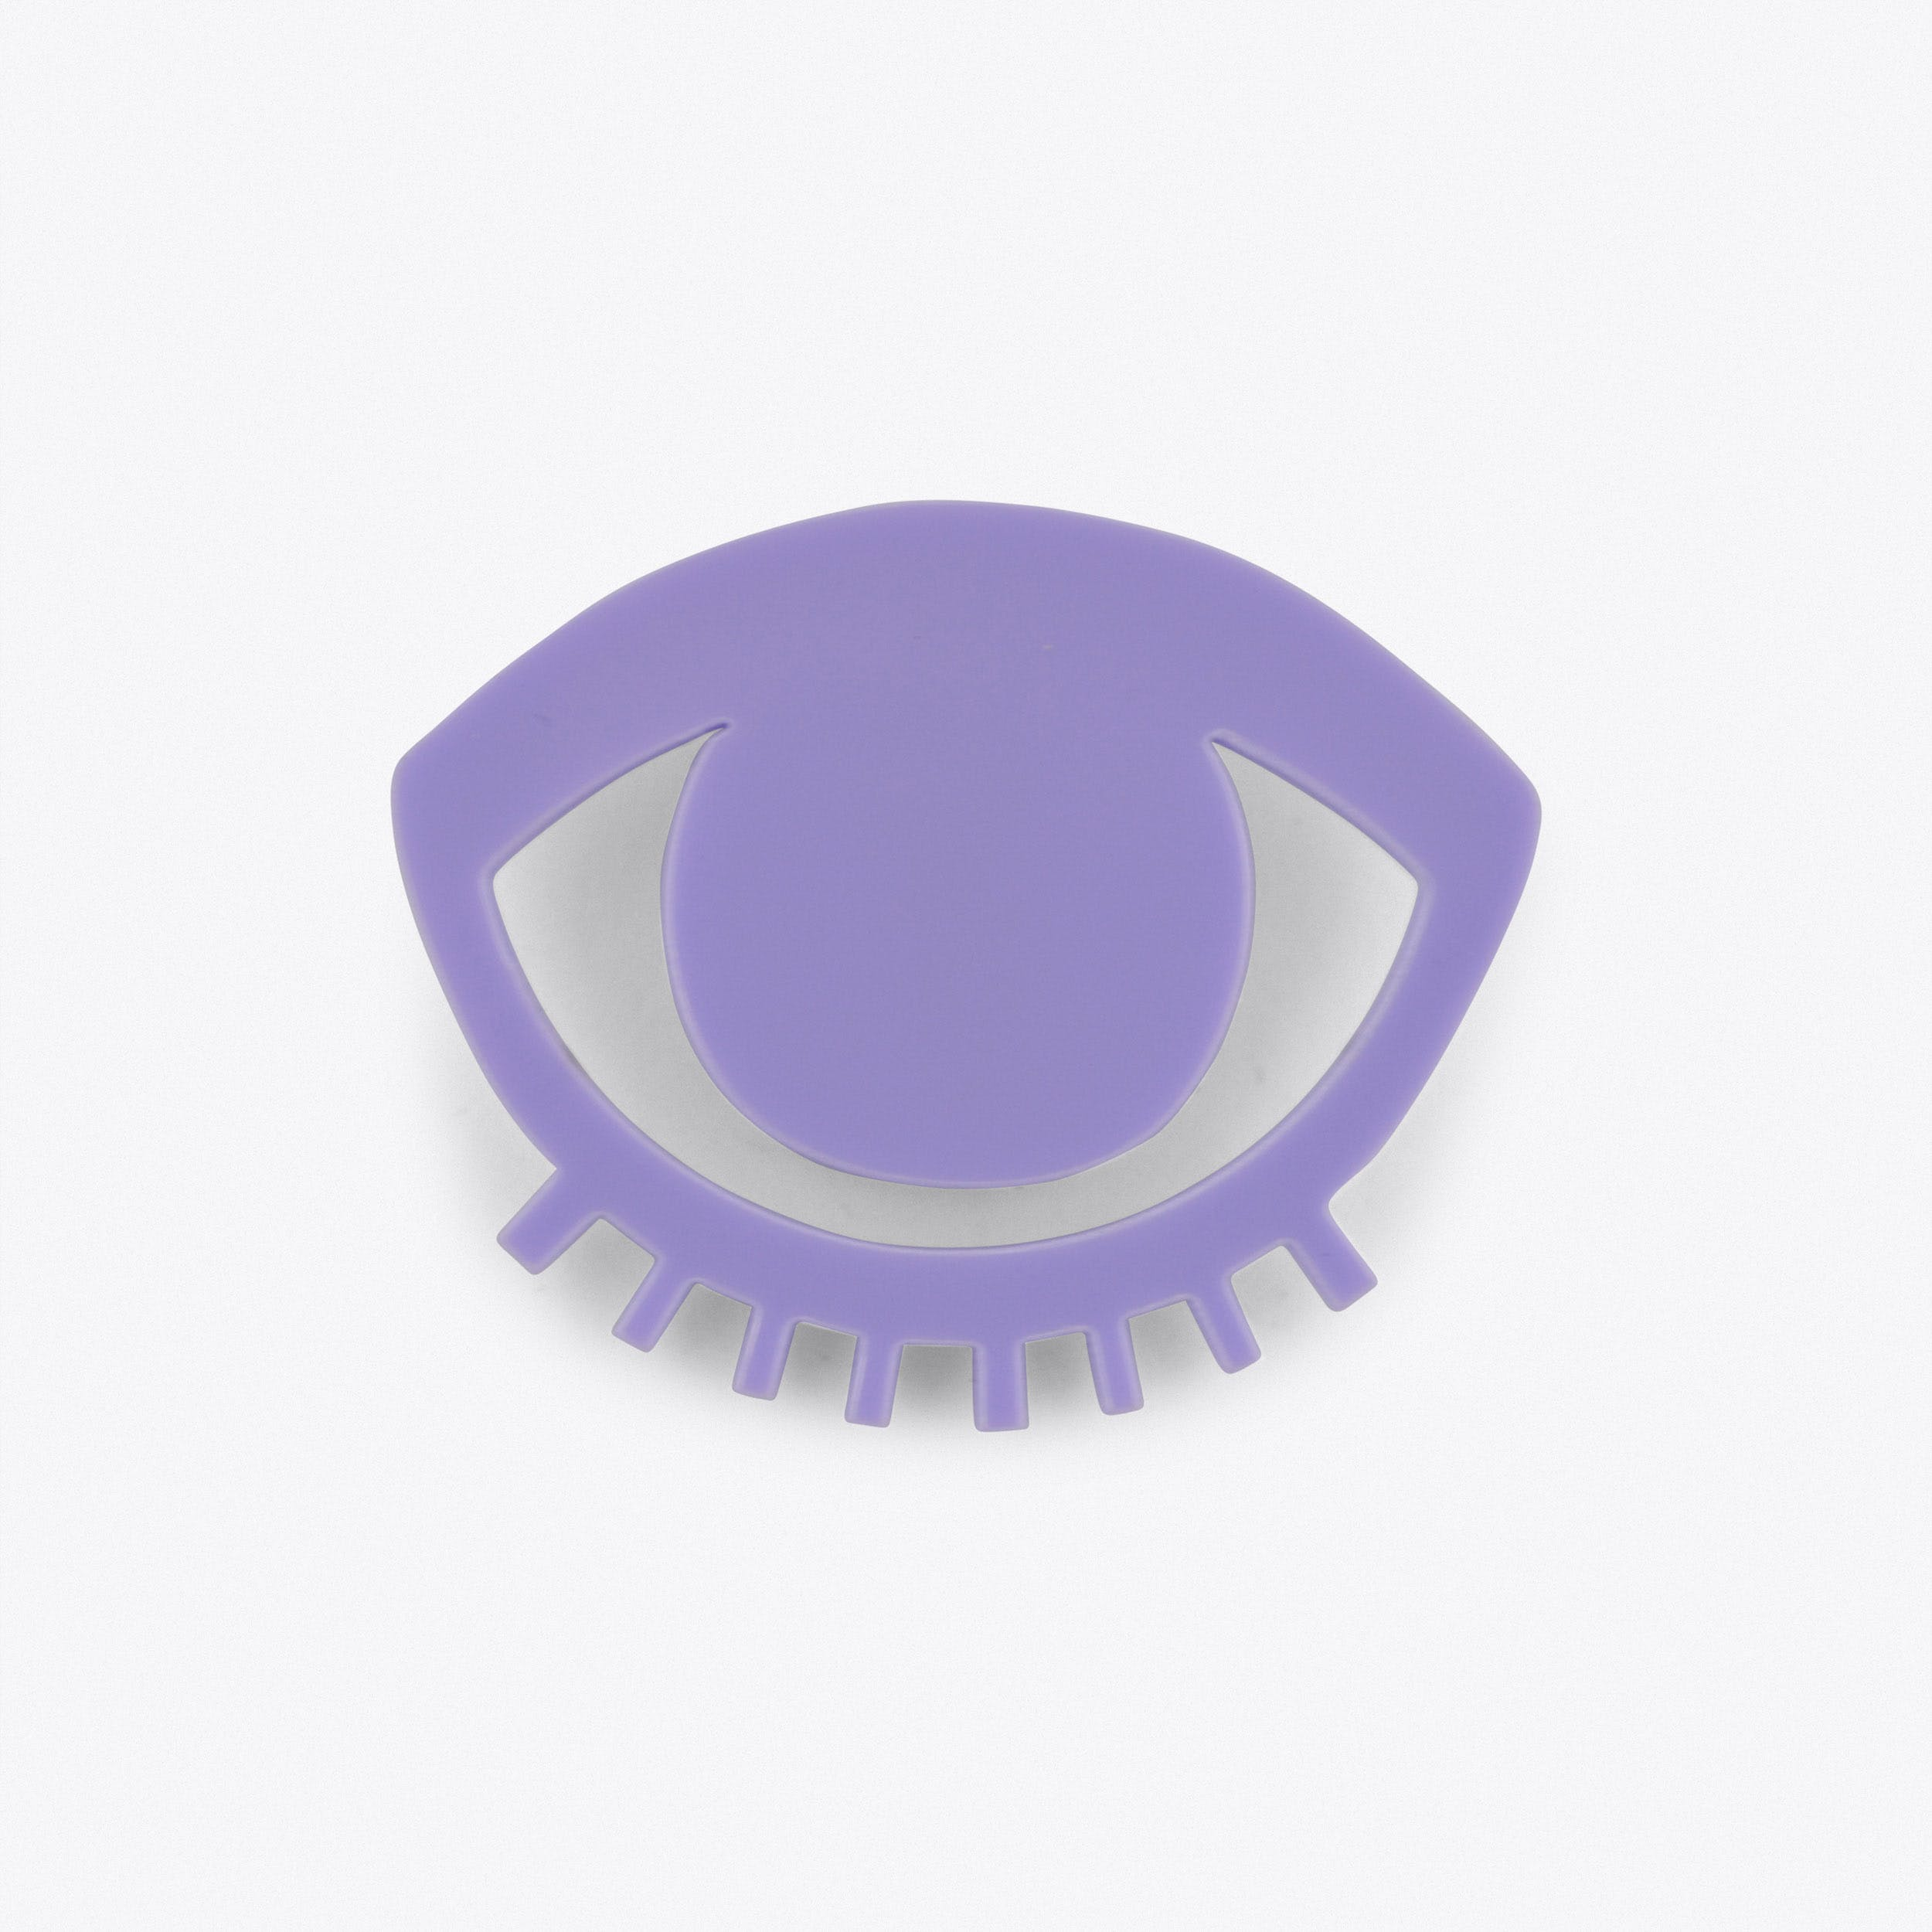 Statement Eye Brooch